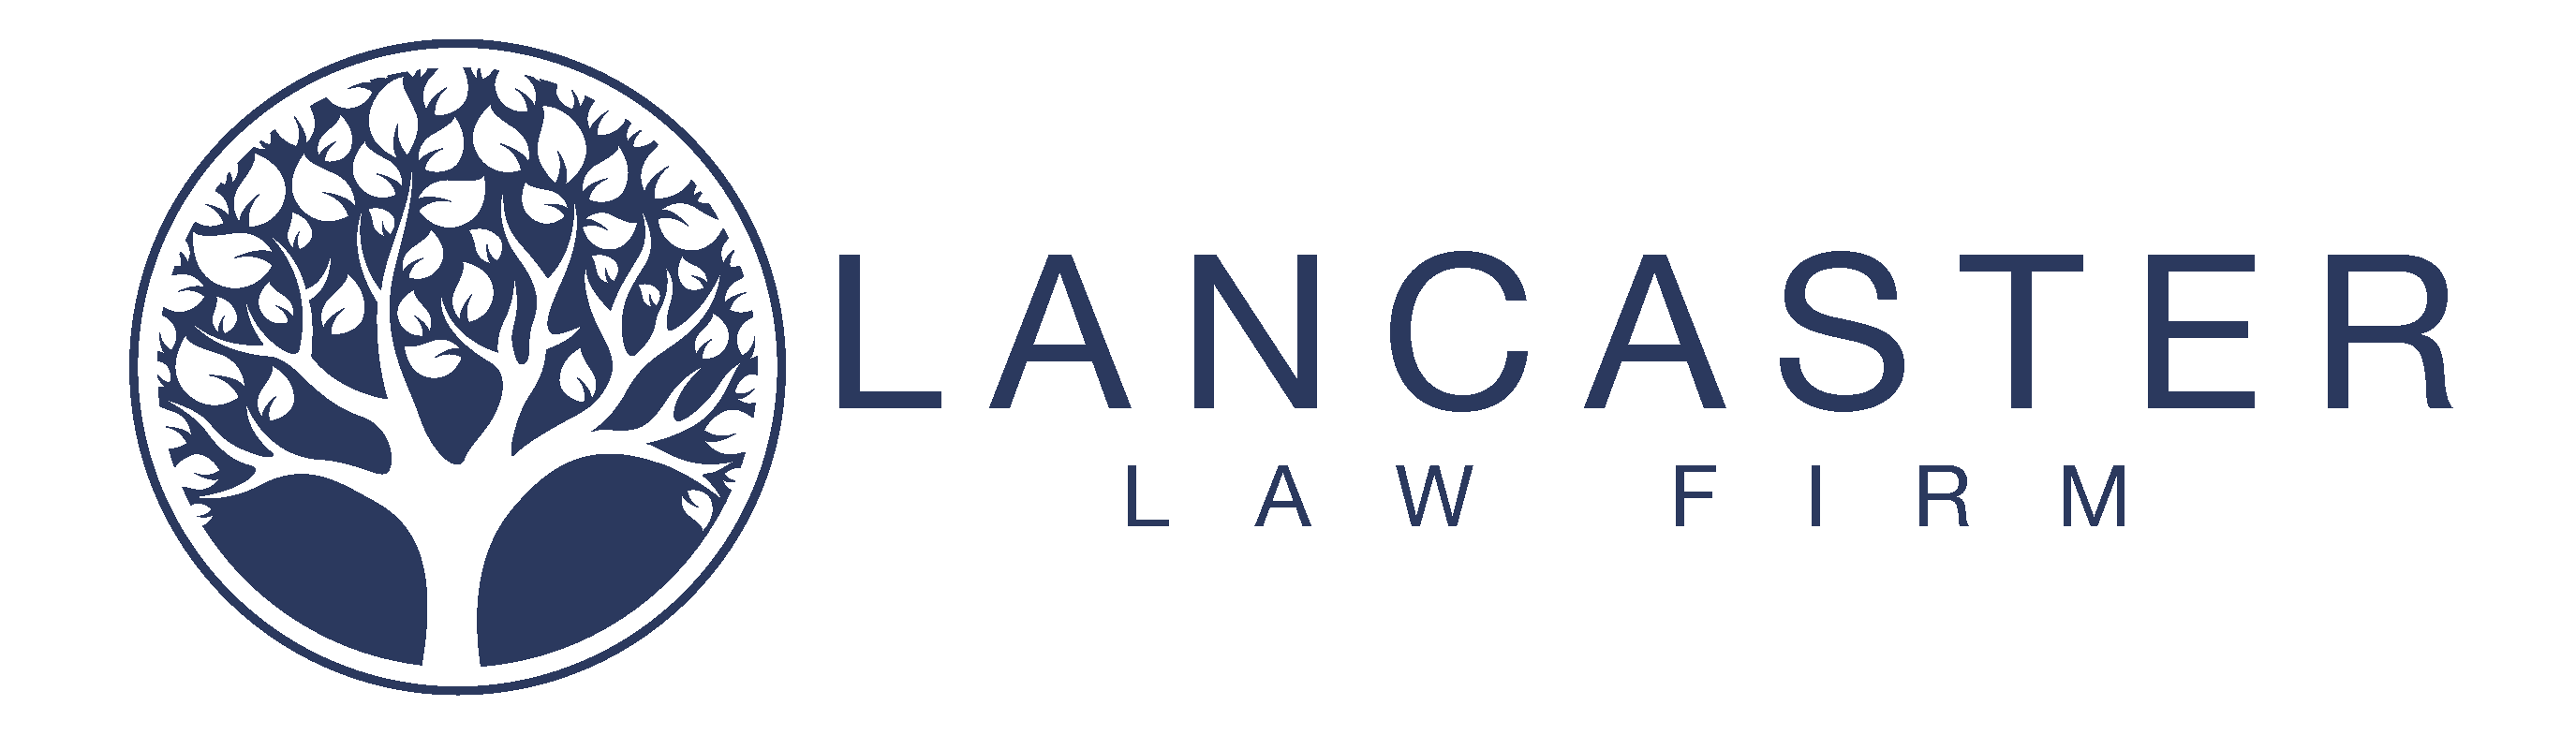 Lancaster Law Firm, LLC